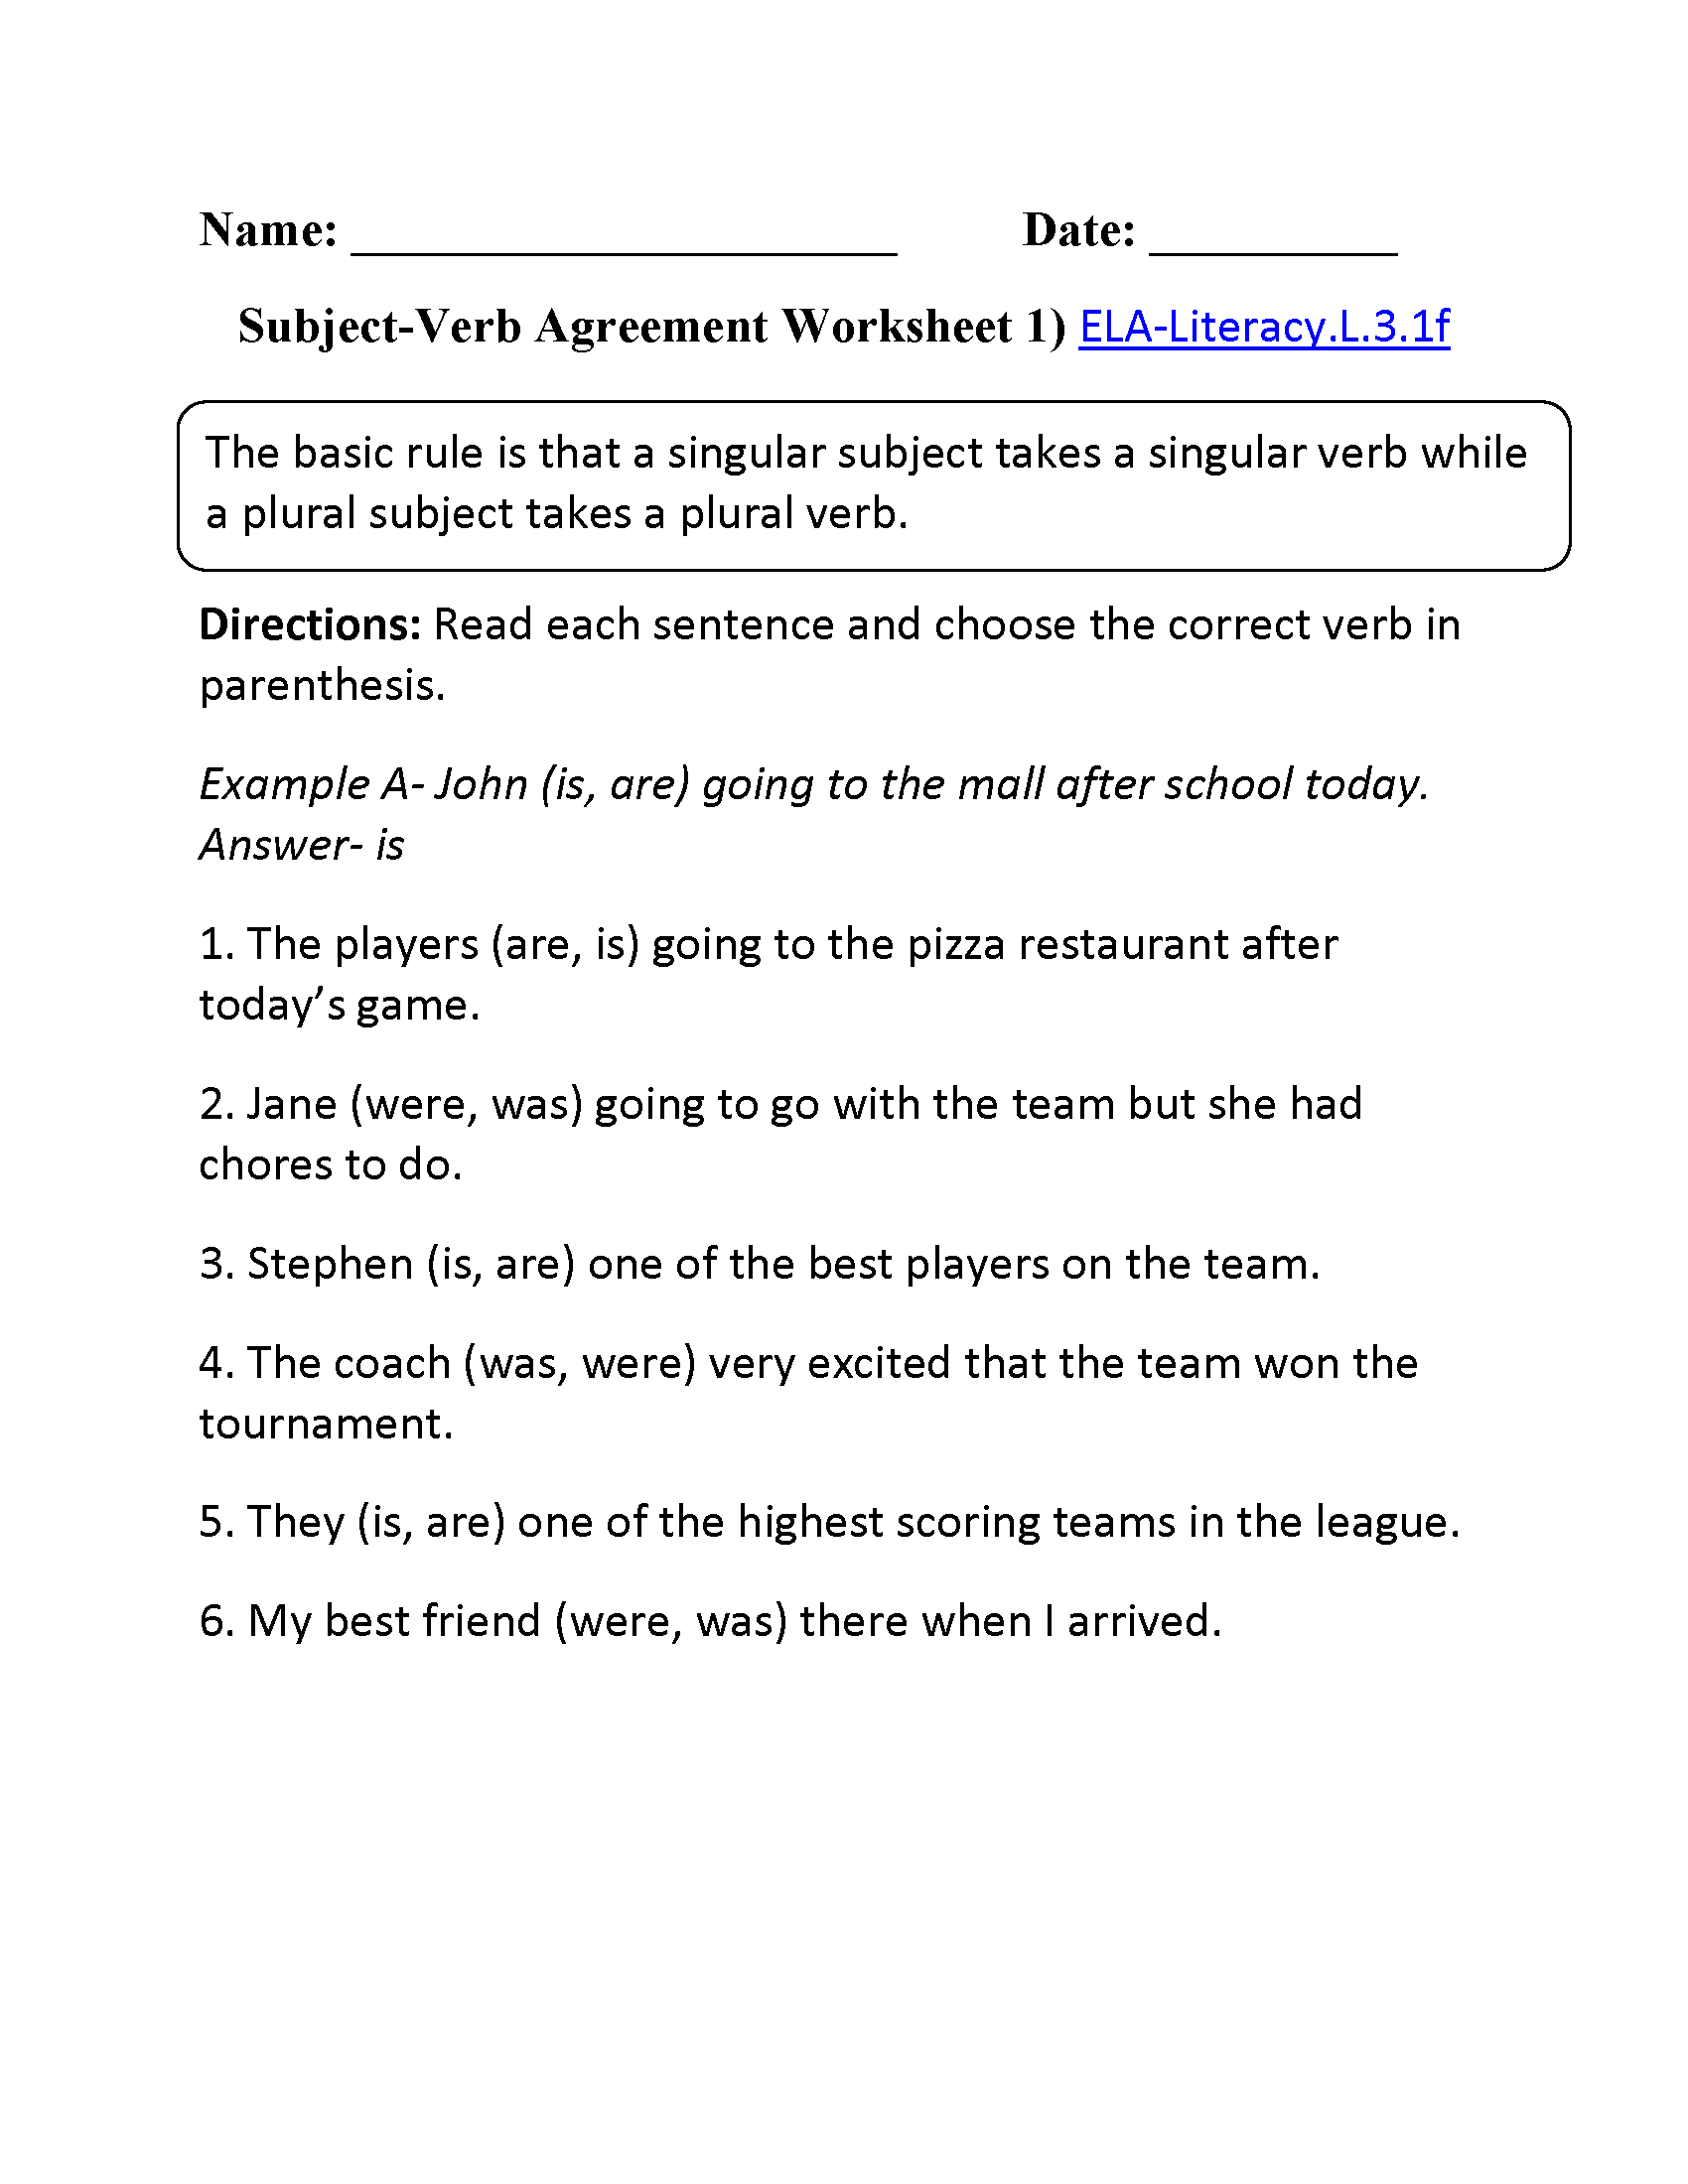 Subject Verb Agreement Worksheet 1 Ela Literacy L 3 1f Language Worksheet